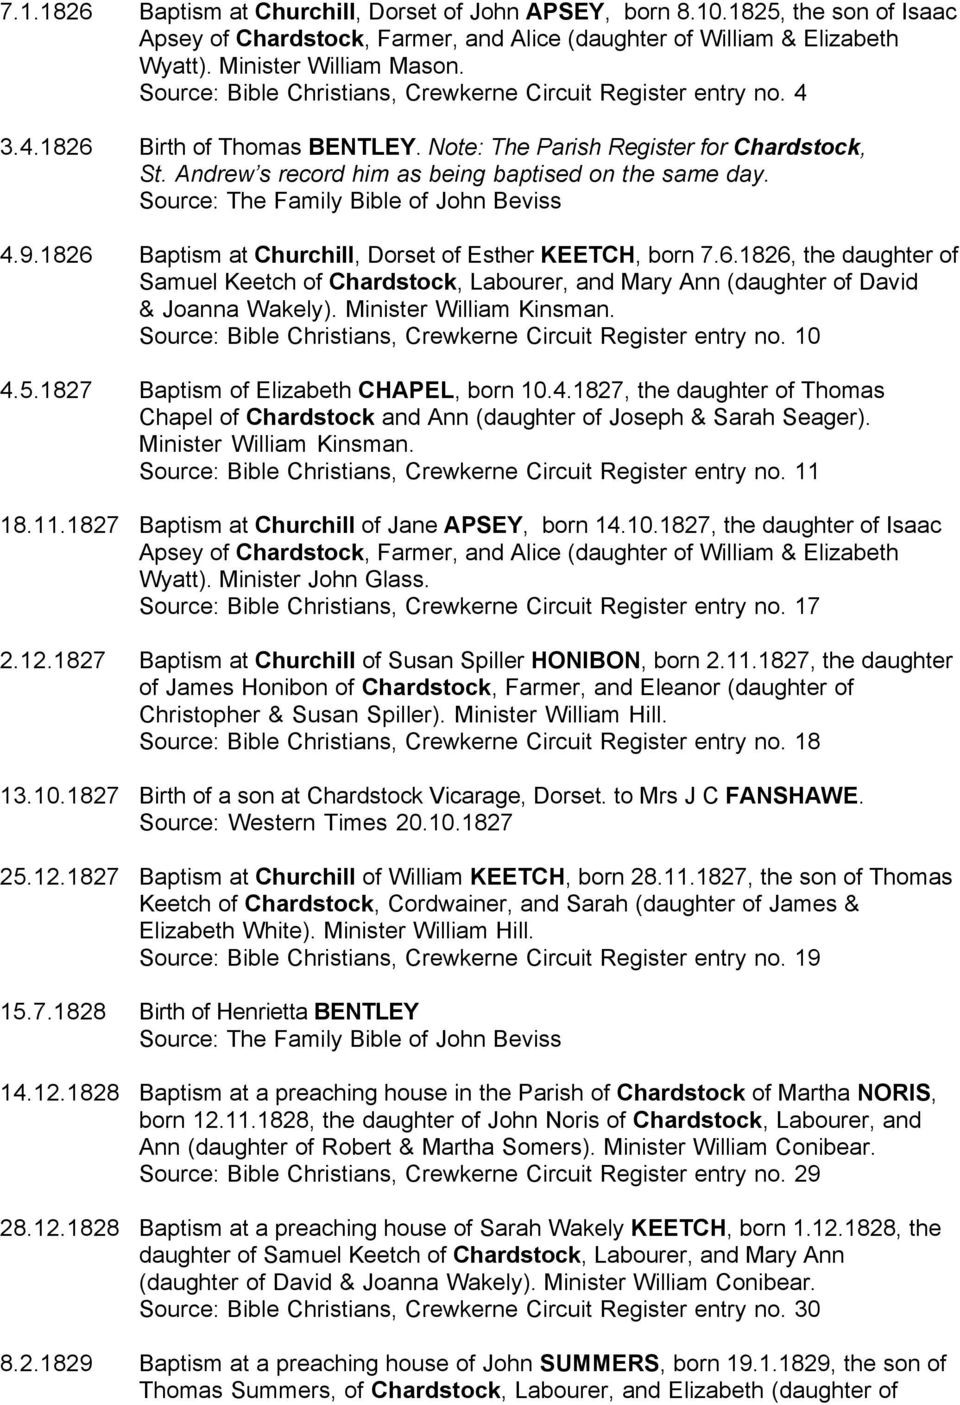 4.9.1826 Baptism at Churchill, Dorset of Esther KEETCH, born 7.6.1826, the daughter of Samuel Keetch of Chardstock, Labourer, and Mary Ann (daughter of David & Joanna Wakely).